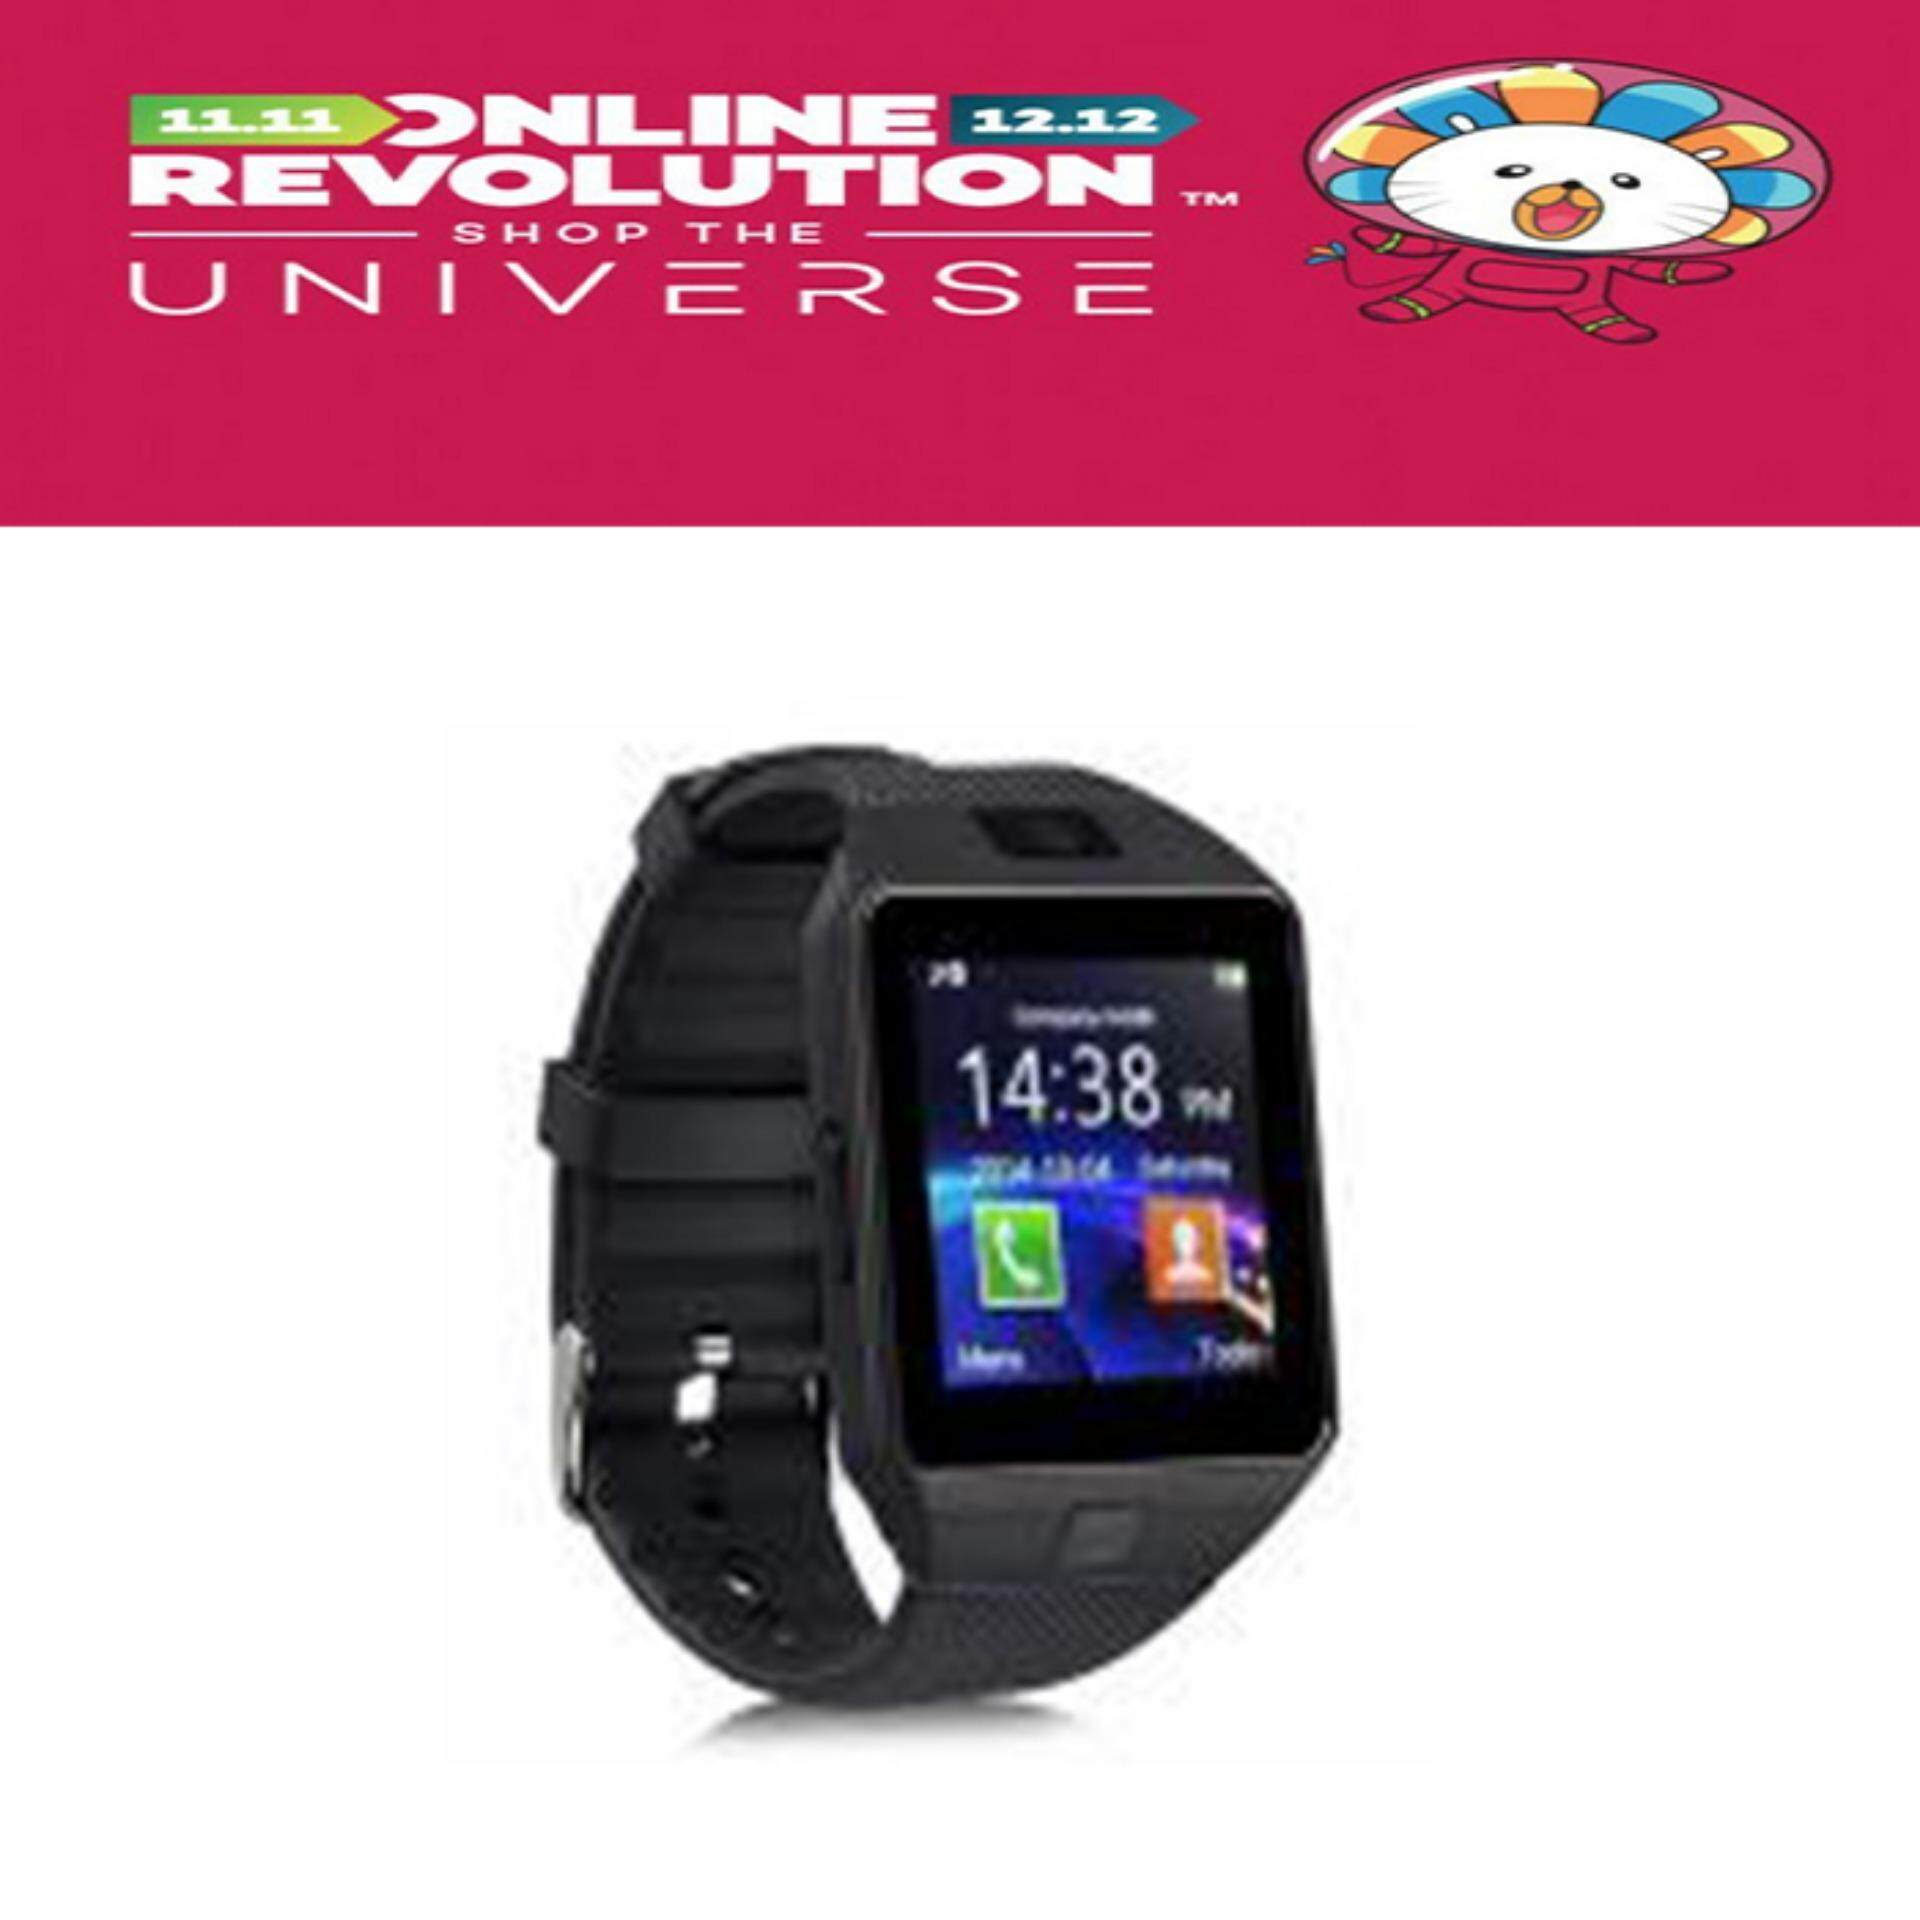 dd51c189e10 Bluetooth Smartwatch DZ09 Smart Watch Mobile Phone Sim Card For Android IOS  (Black)